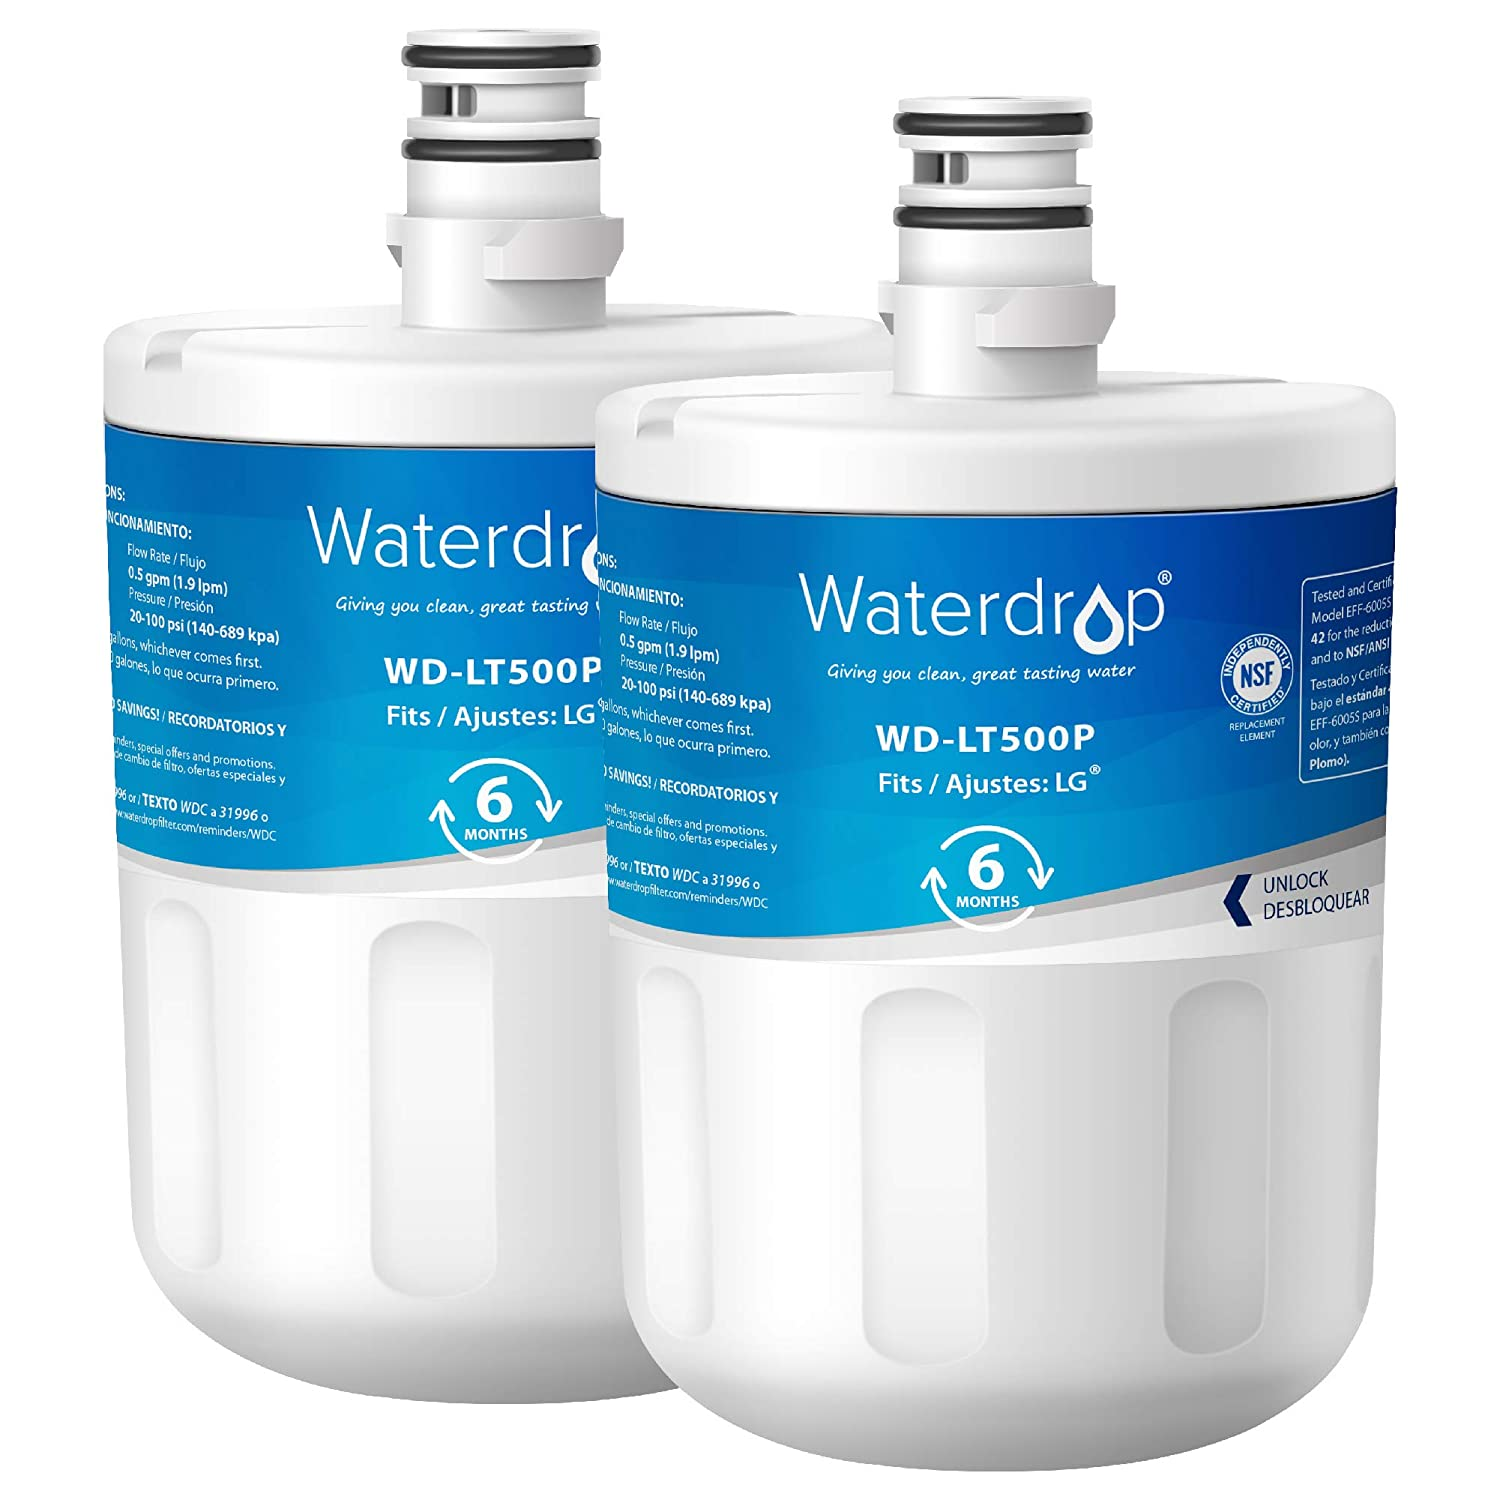 Waterdrop Refrigerator Water Filter, Compatible with LG LT500P, 5231JA2002A, ADQ72910901, ADQ72910907, Kenmore GEN11042FR-08, 9890, 469890, 46-9890, Standard Series, Pack of 2